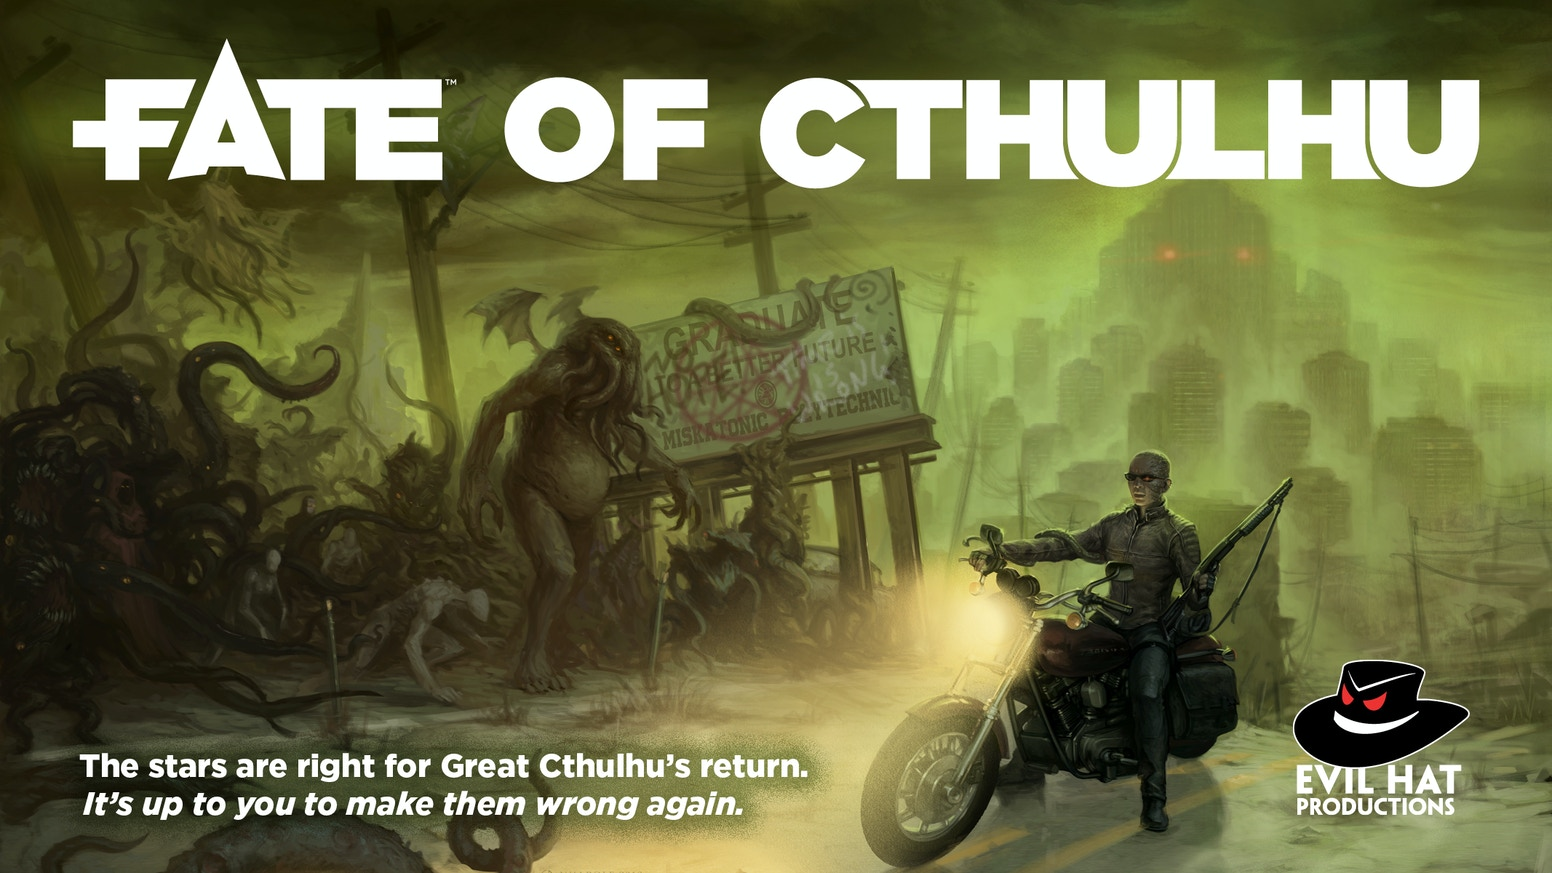 The stars are right for Great Cthulhu's return—and it's your job to make them wrong again in this Fate-powered roleplaying game!